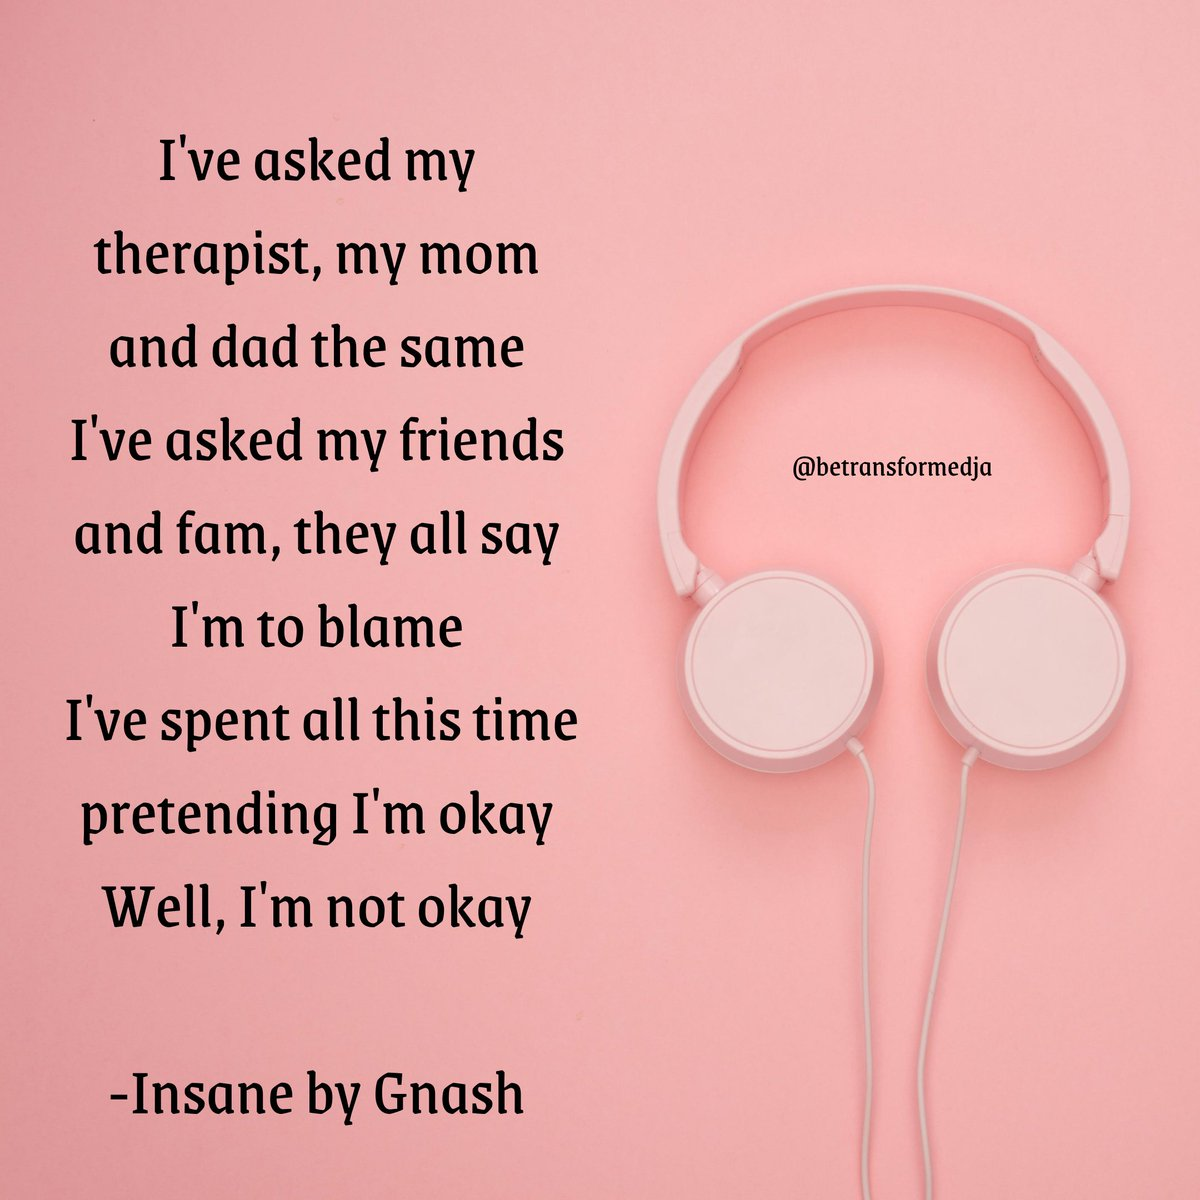 """Going to counselling really lifted a huge weight off my shoulders because I was finally able to say """"I'm not OK"""" without being judged or dismissed.  I didn't need to put up a front and I could be as vulnerable as I needed to be. If you are not ok, talk to someone. pic.twitter.com/8NkIijZrJ3"""